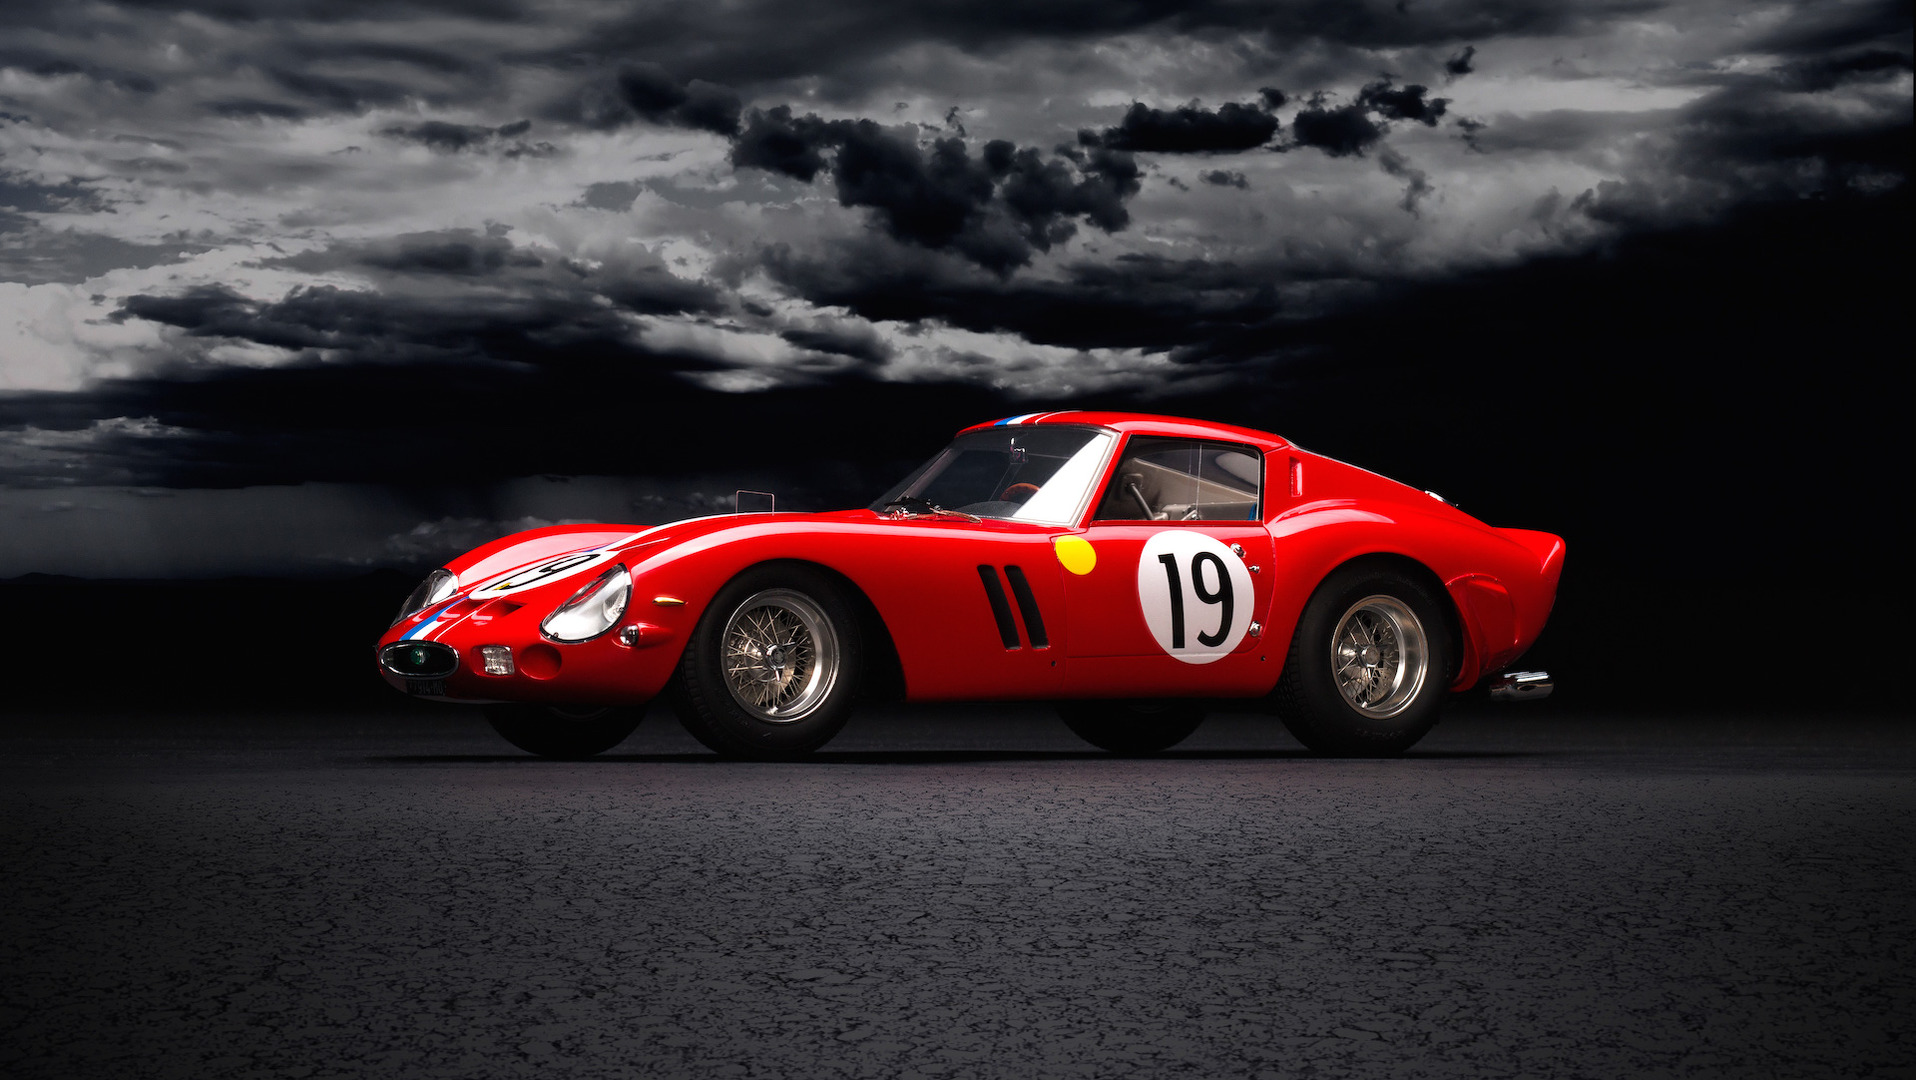 amalgam une superbe ferrari 250 gto 24 heures du mans 1962 l 39 chelle 1 18. Black Bedroom Furniture Sets. Home Design Ideas